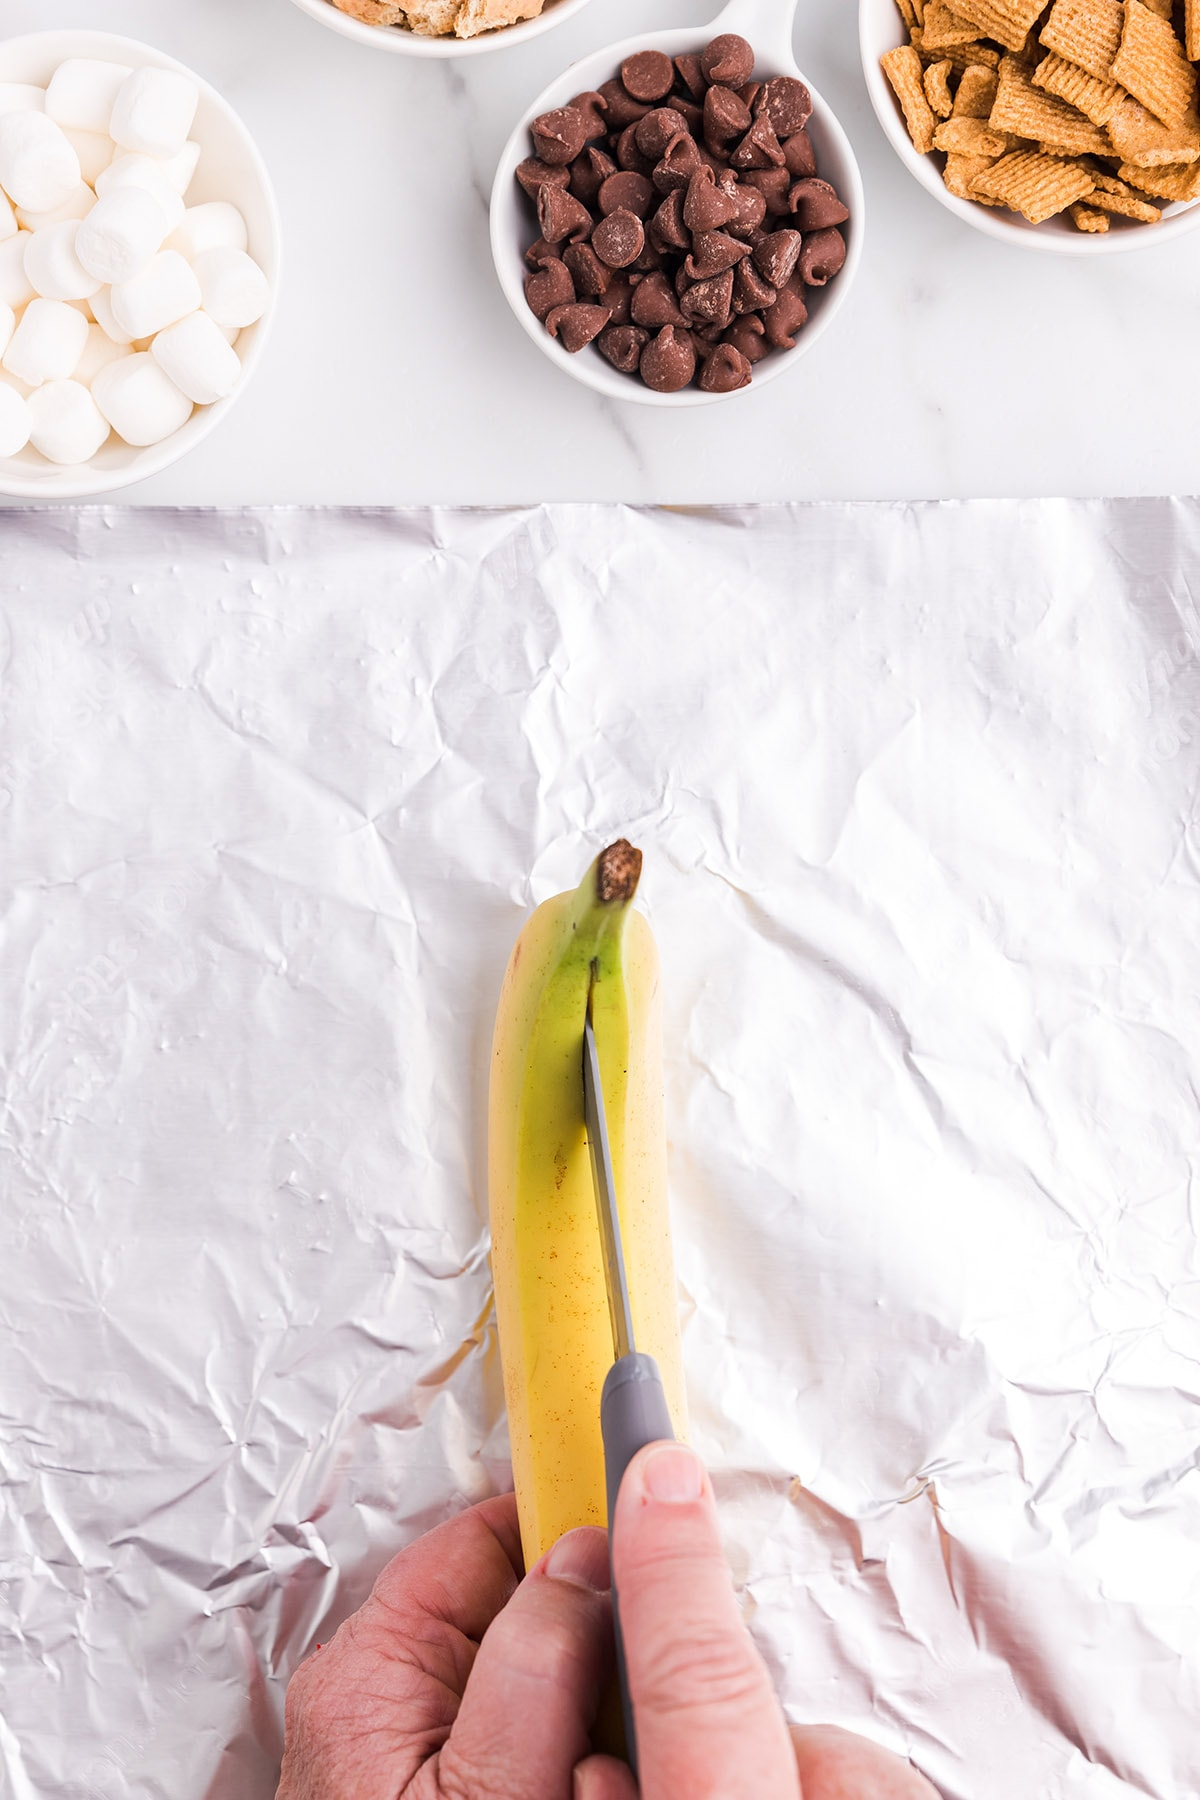 cut the banana in the middle